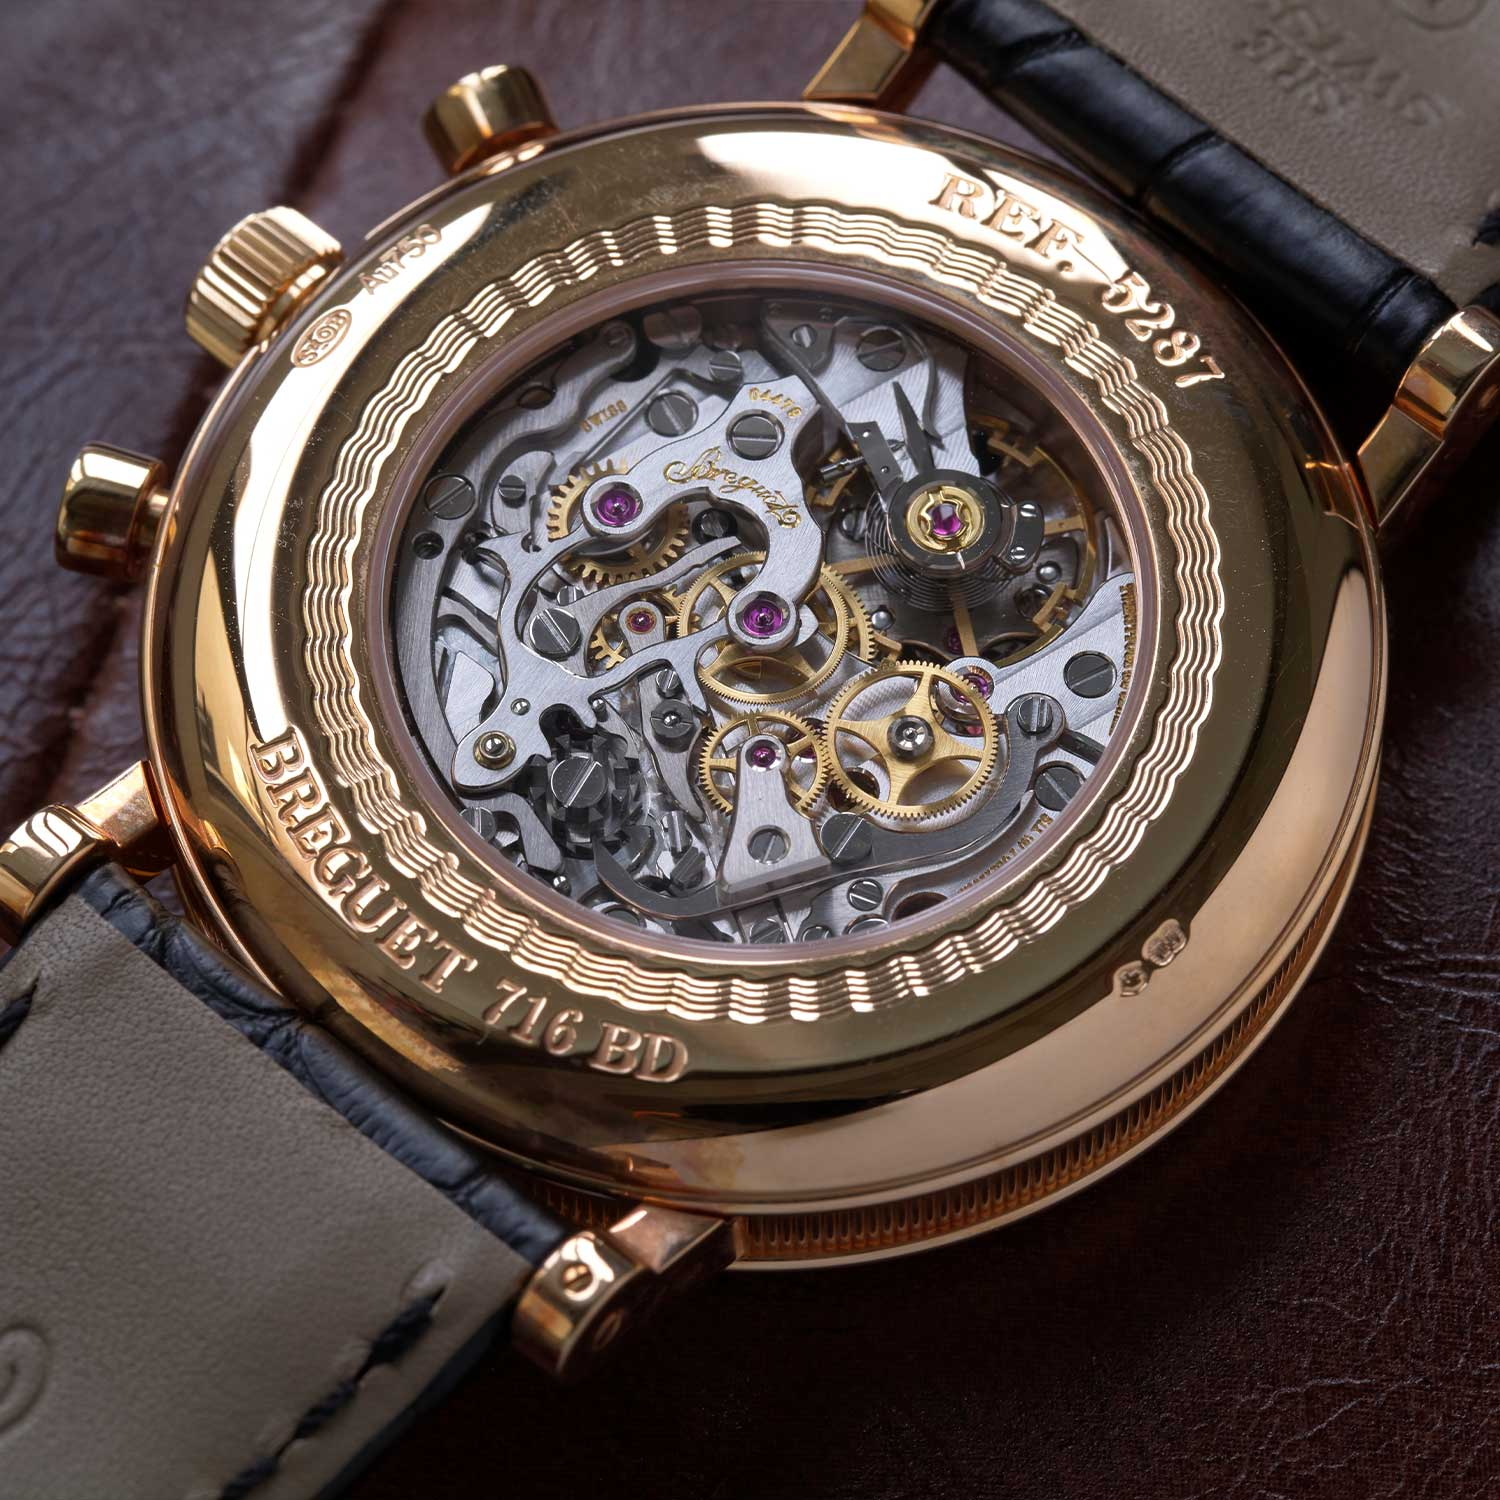 The Breguet 5287 is powered by the calibre 533,3 (Breguet's version of the Lemania 2320) (©Revolution)